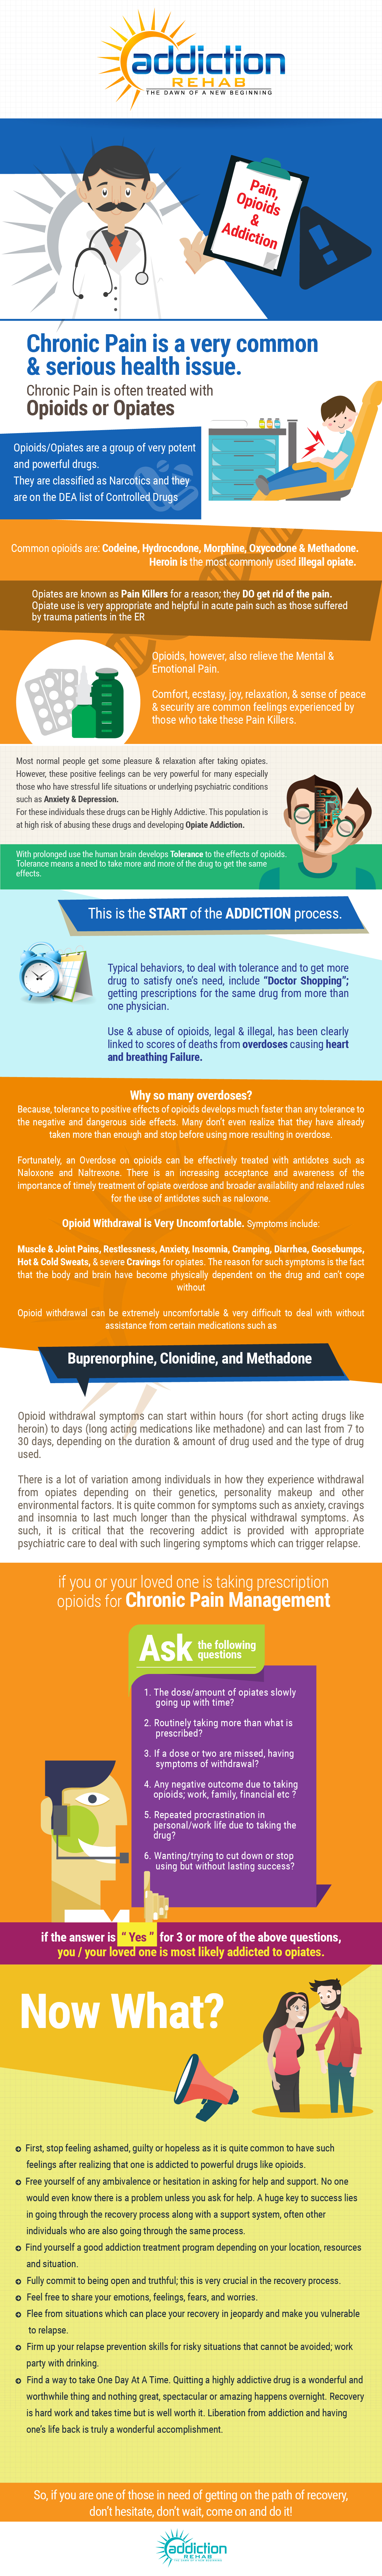 Opiates and Addiction Infographic